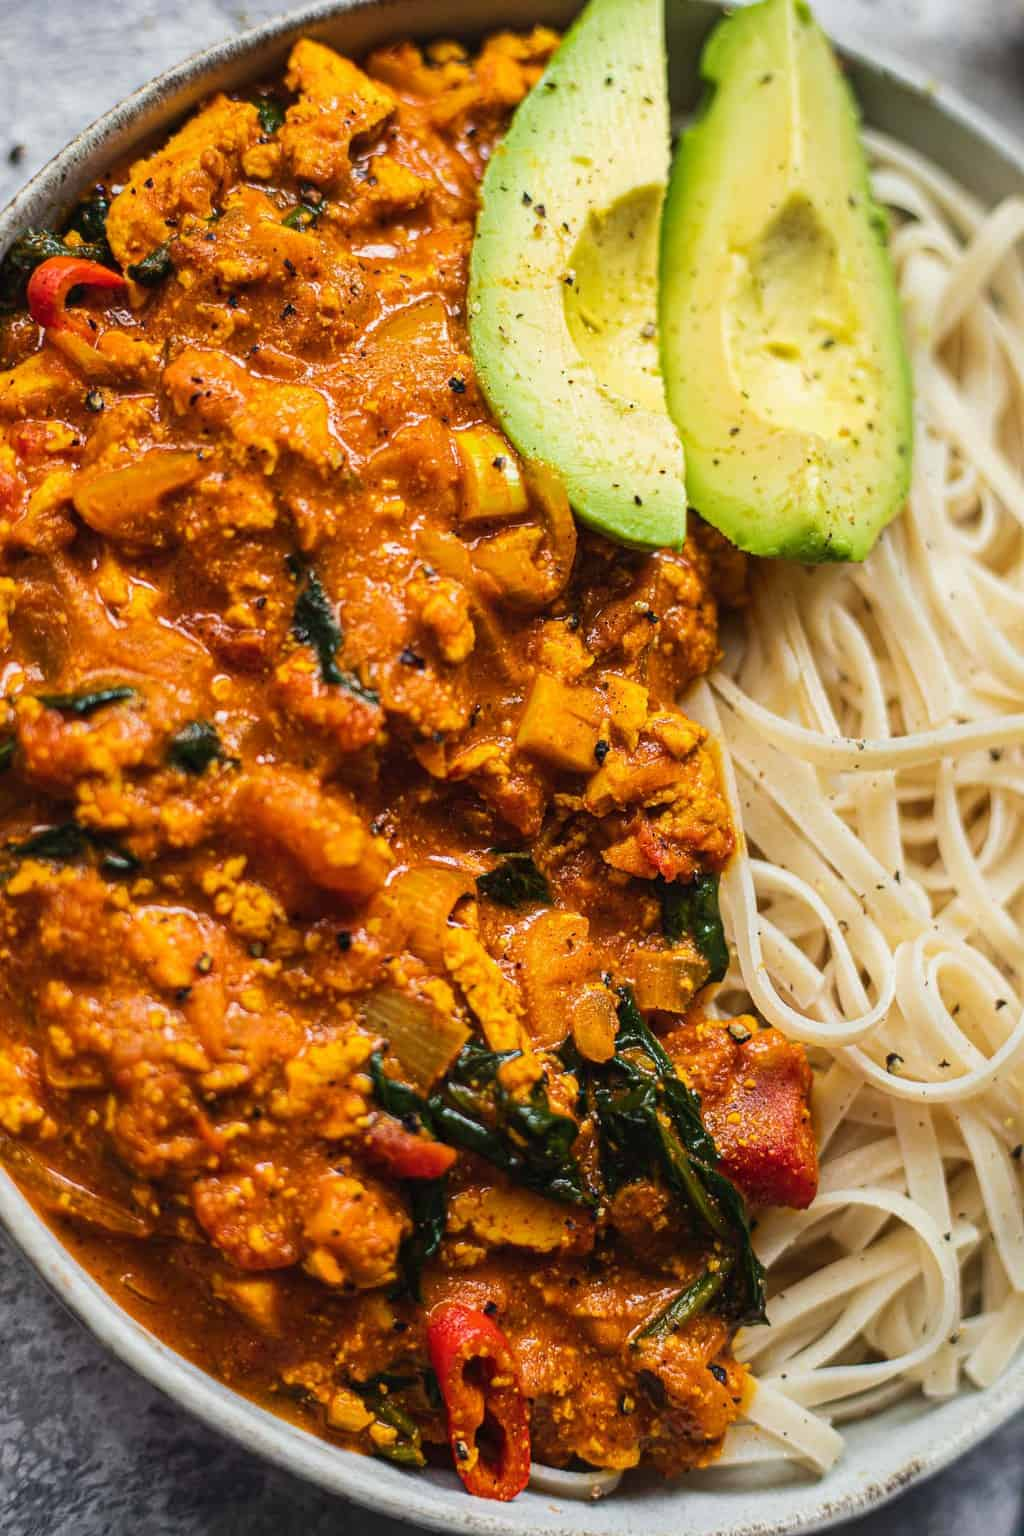 Closeup of vegan curry with noodles and avocado